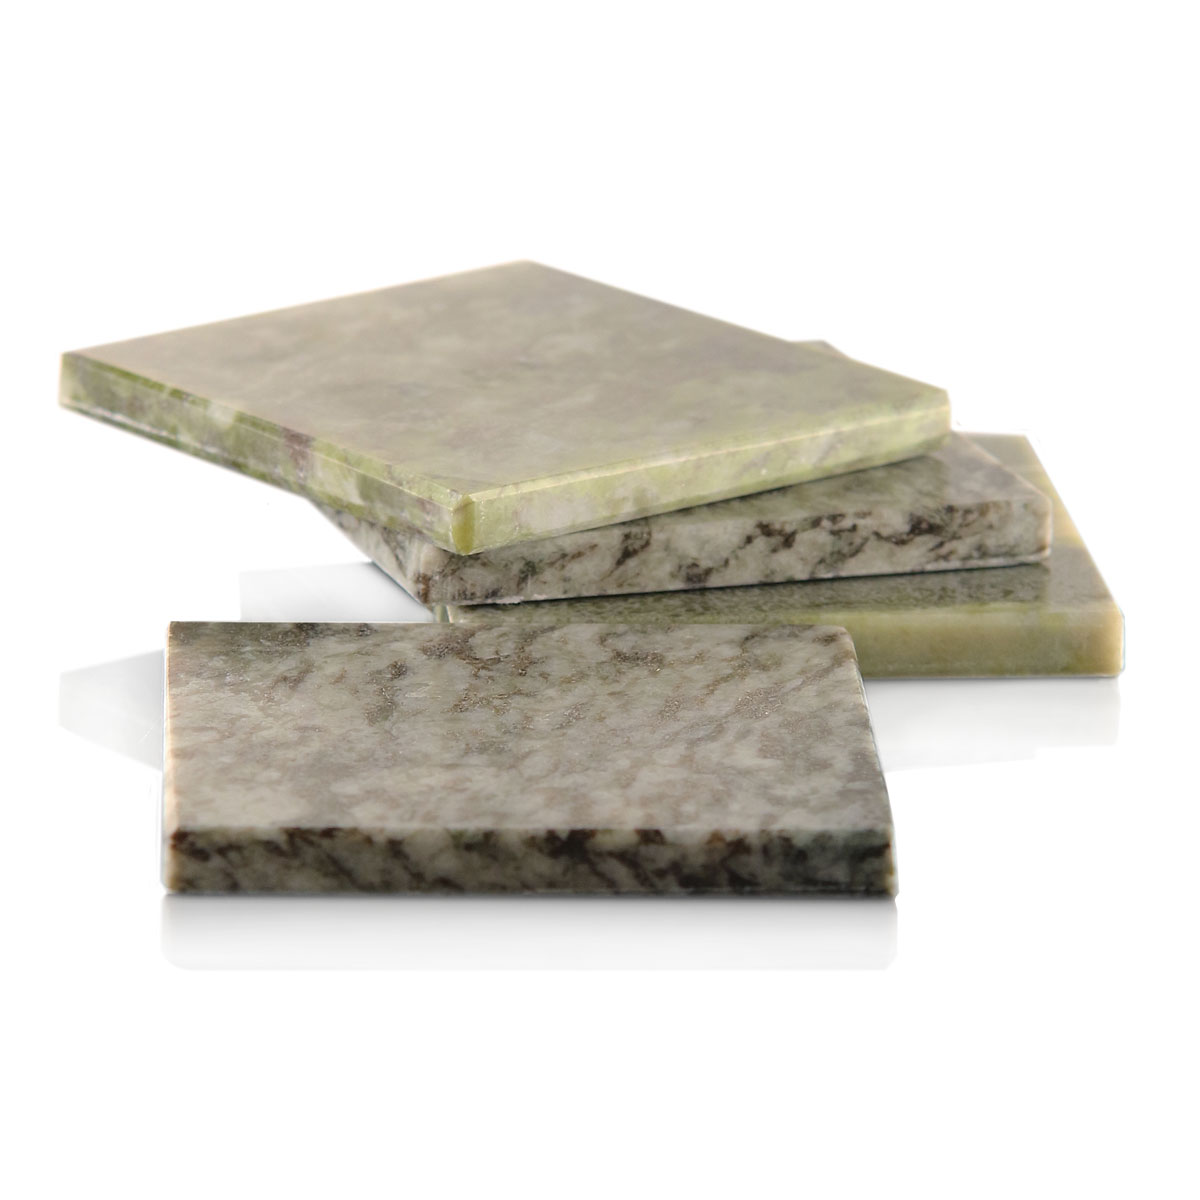 Cashs Ireland, Connemara Marble Square Coasters, Set of Four